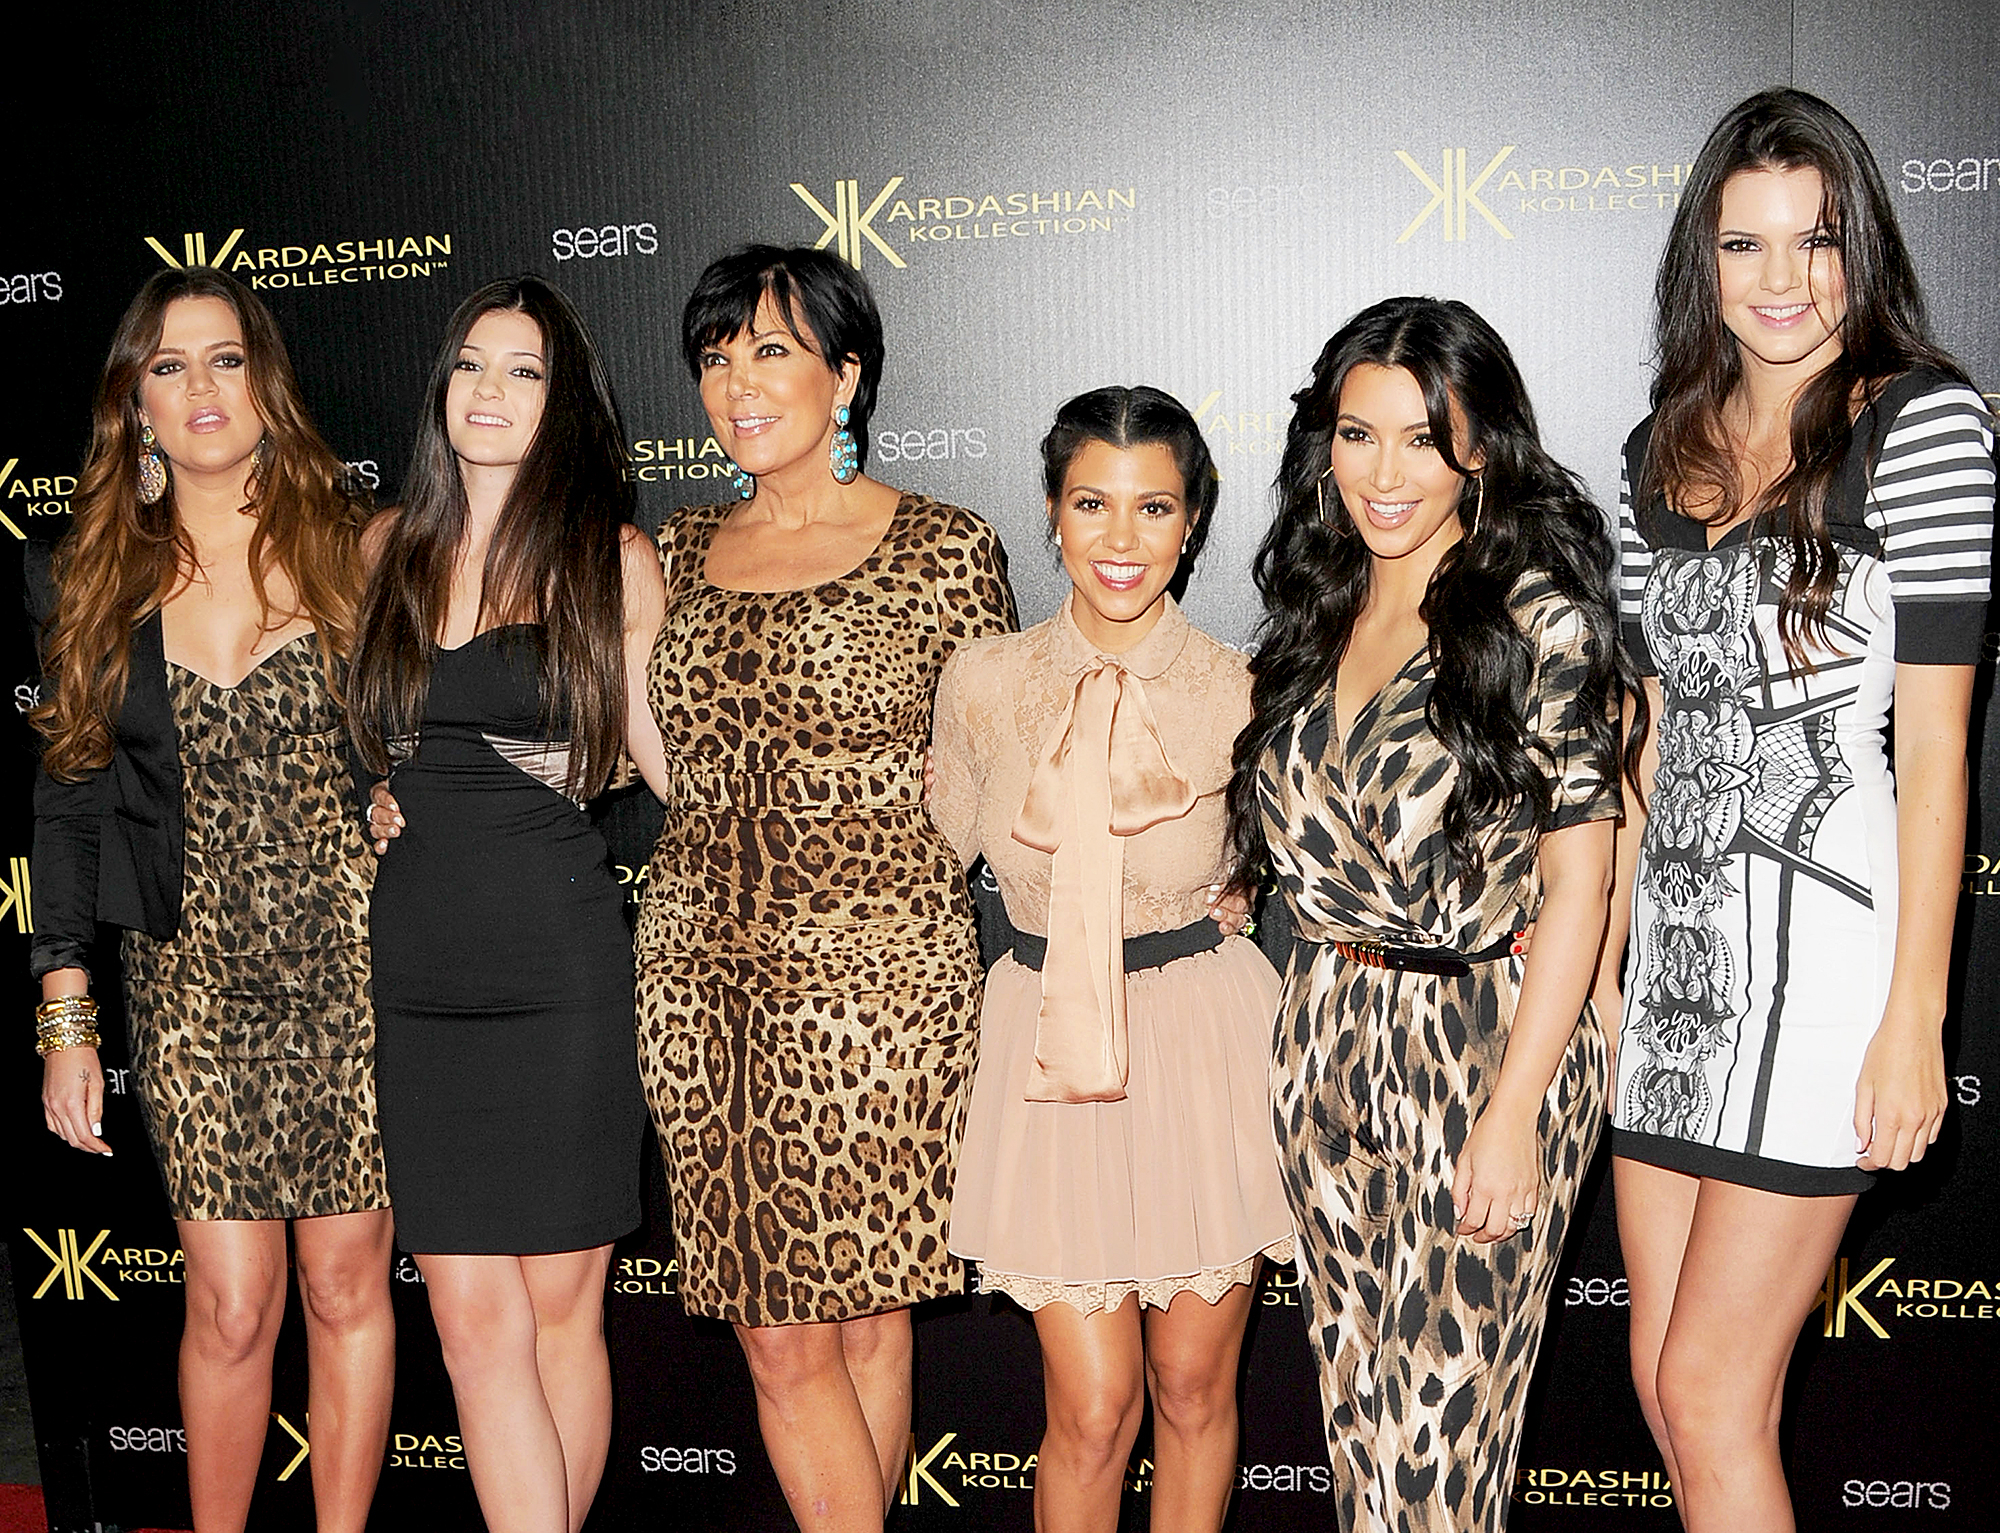 Kardashian and Jenner